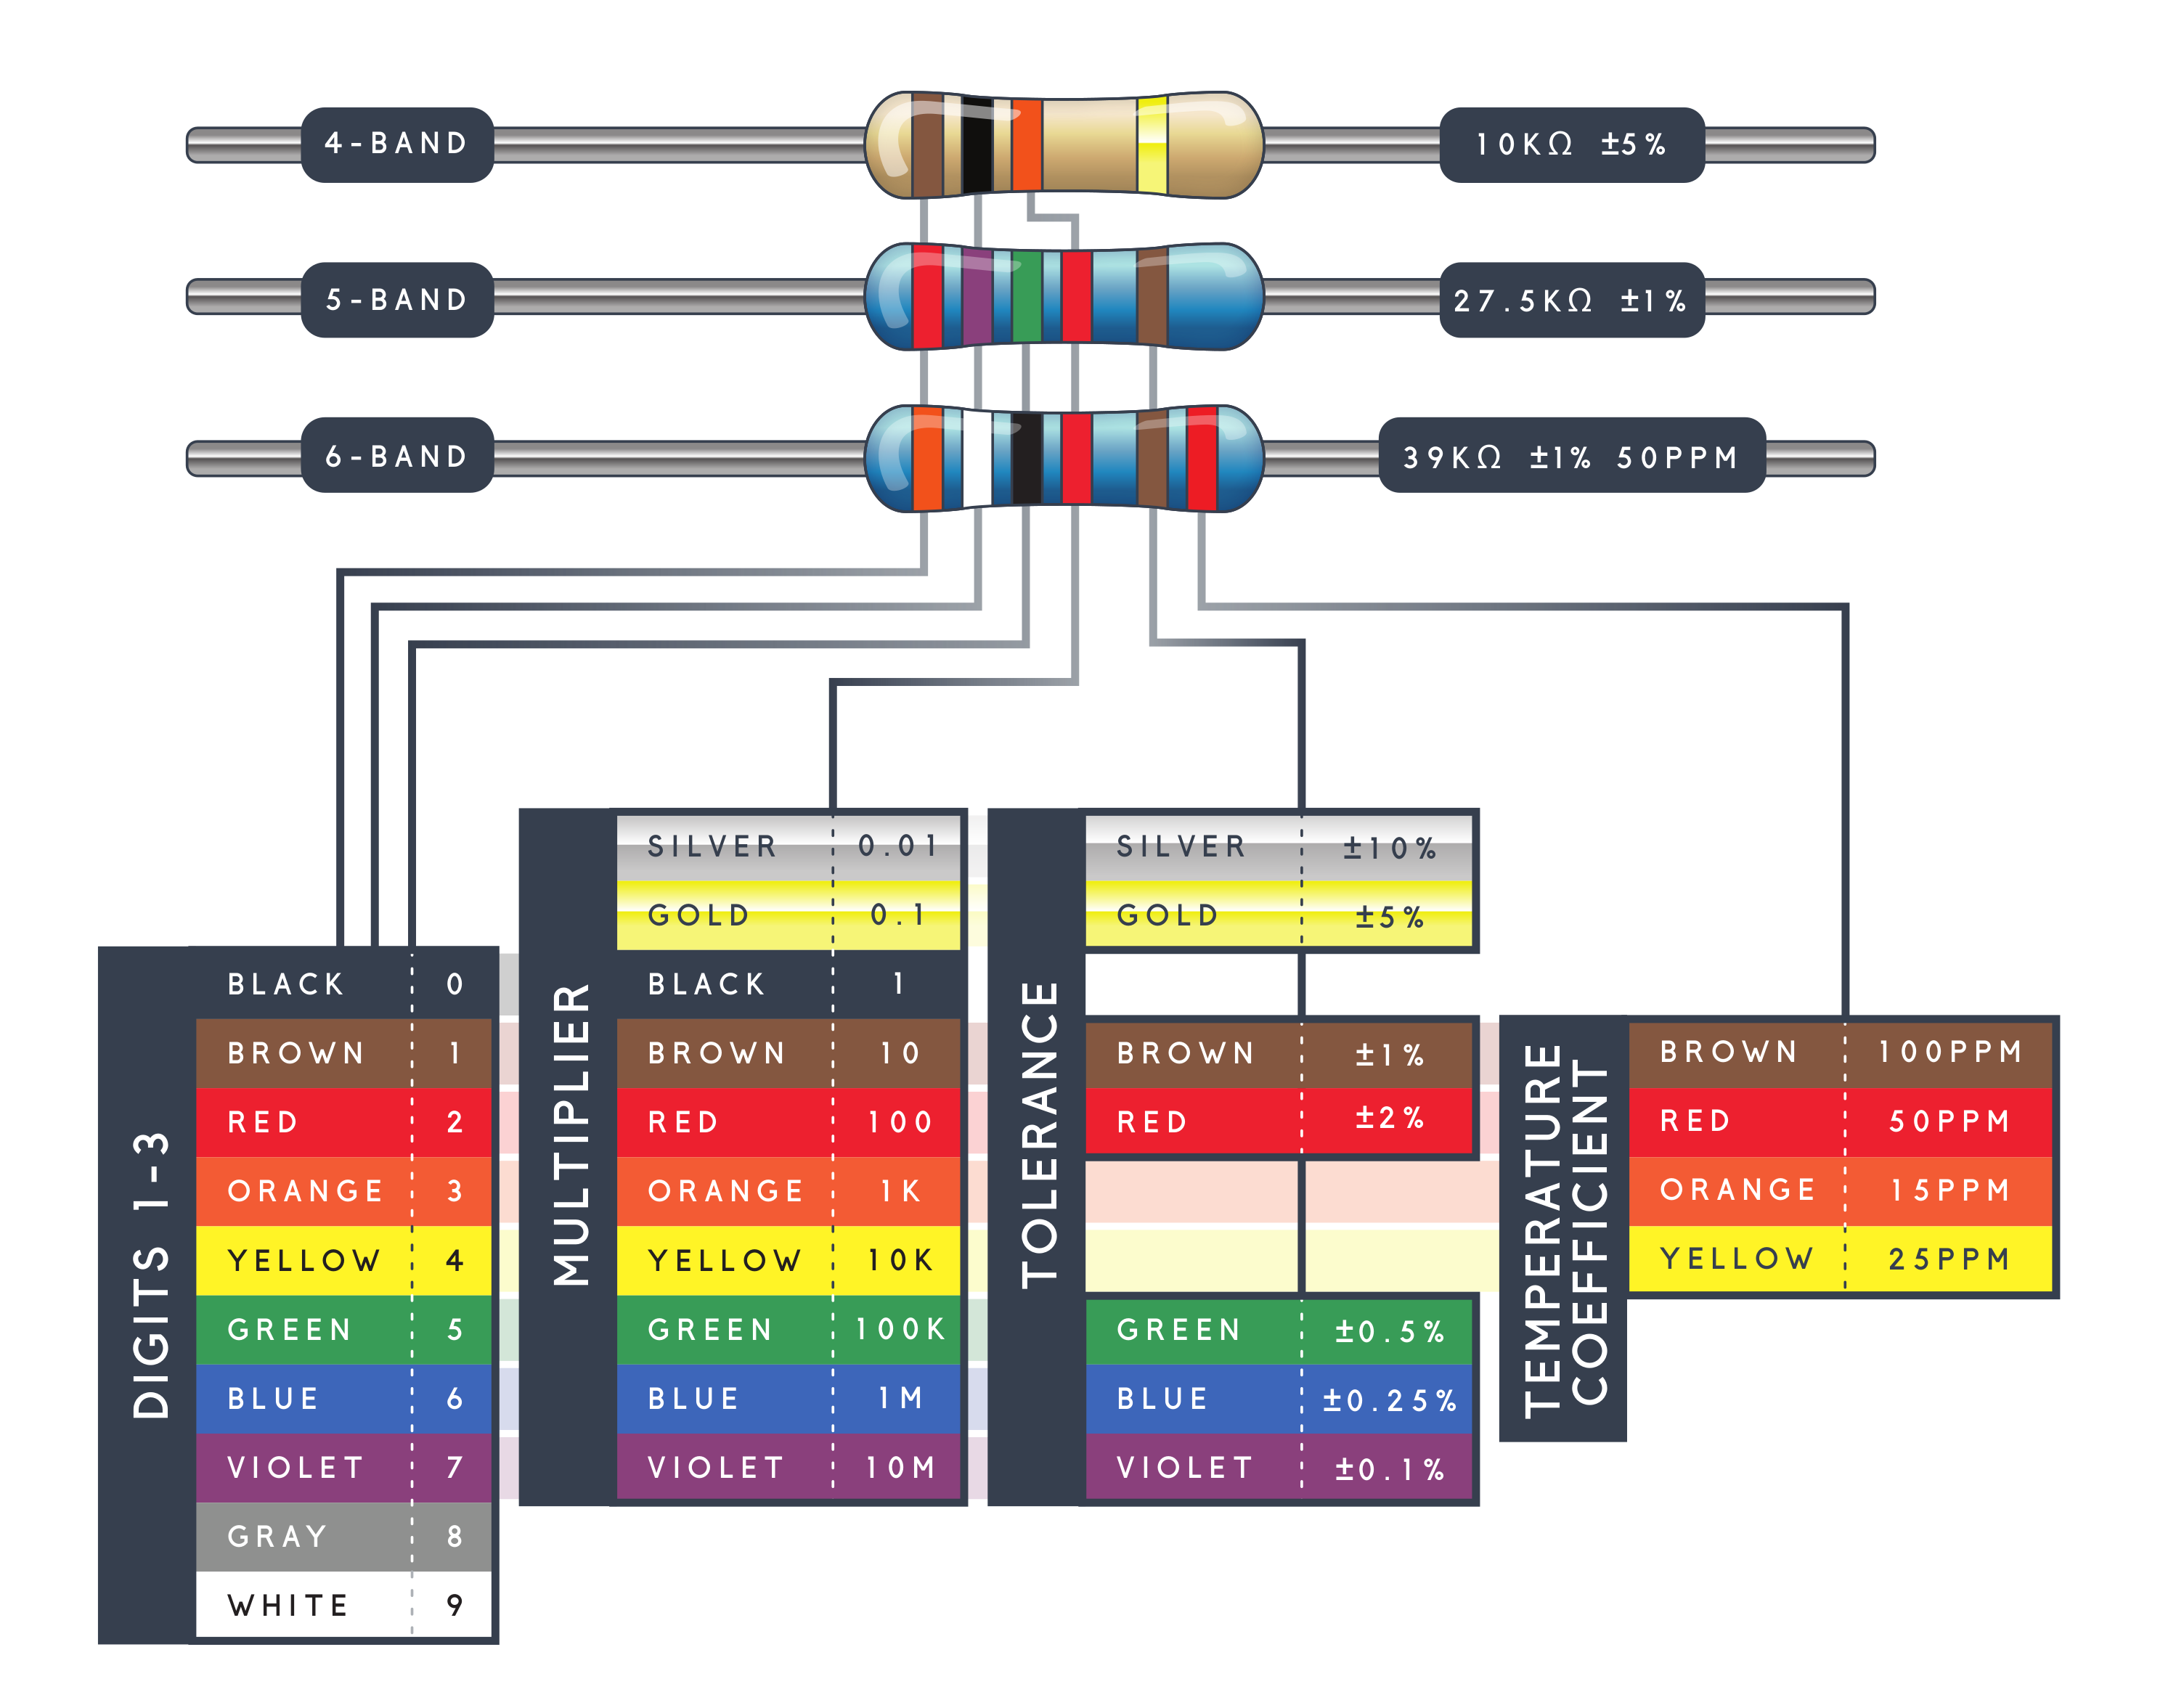 Image of 4, 5, and 6 band resistors and what each band stands for